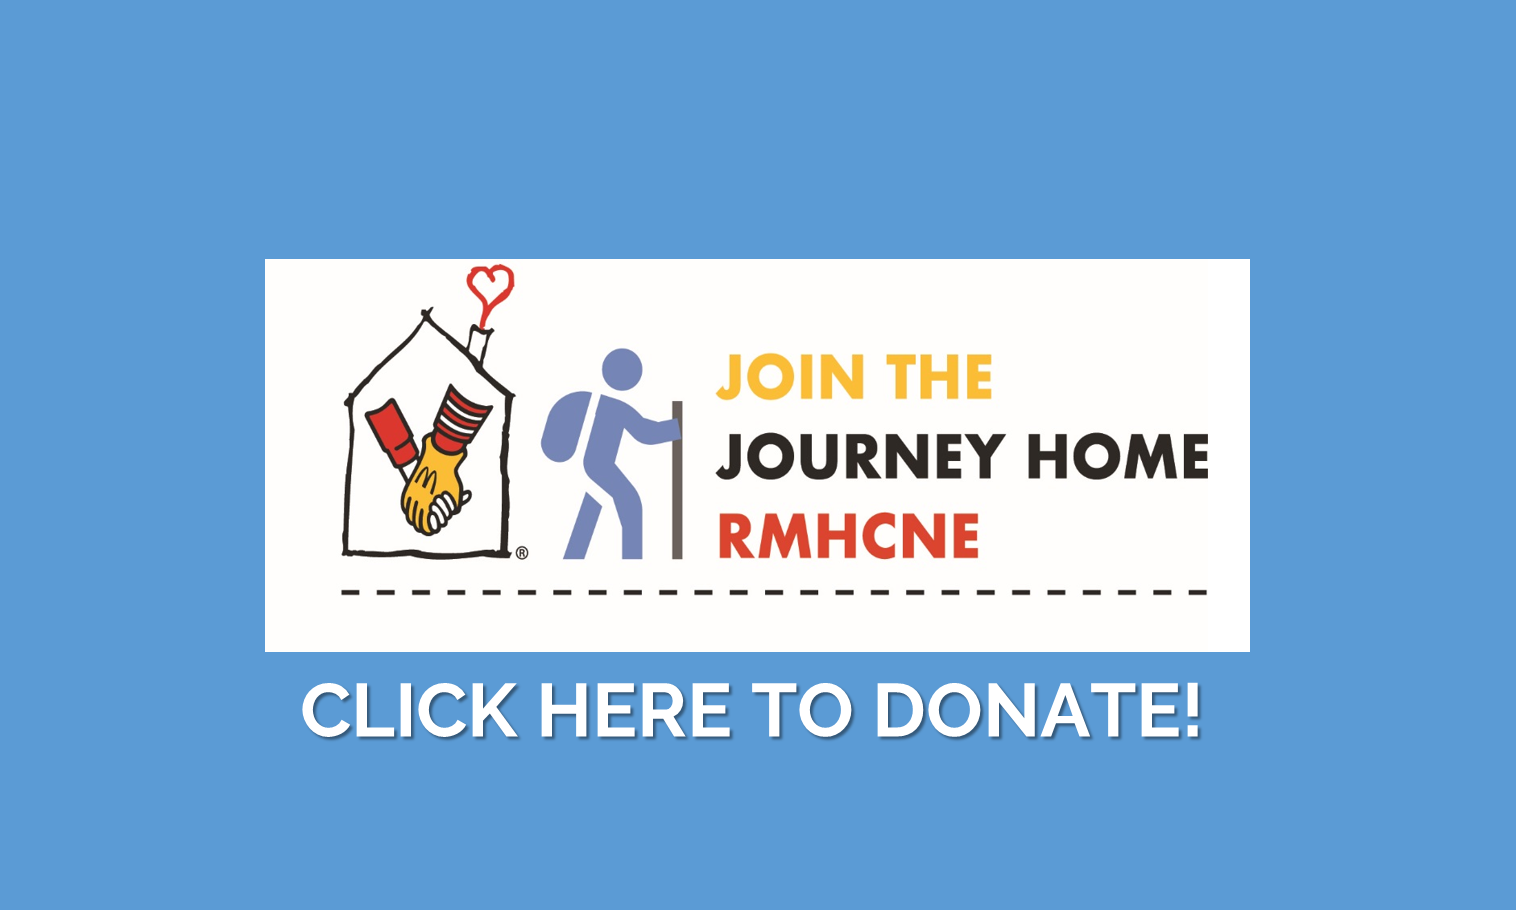 Join the Journey Home RMHCNE Click here to donate